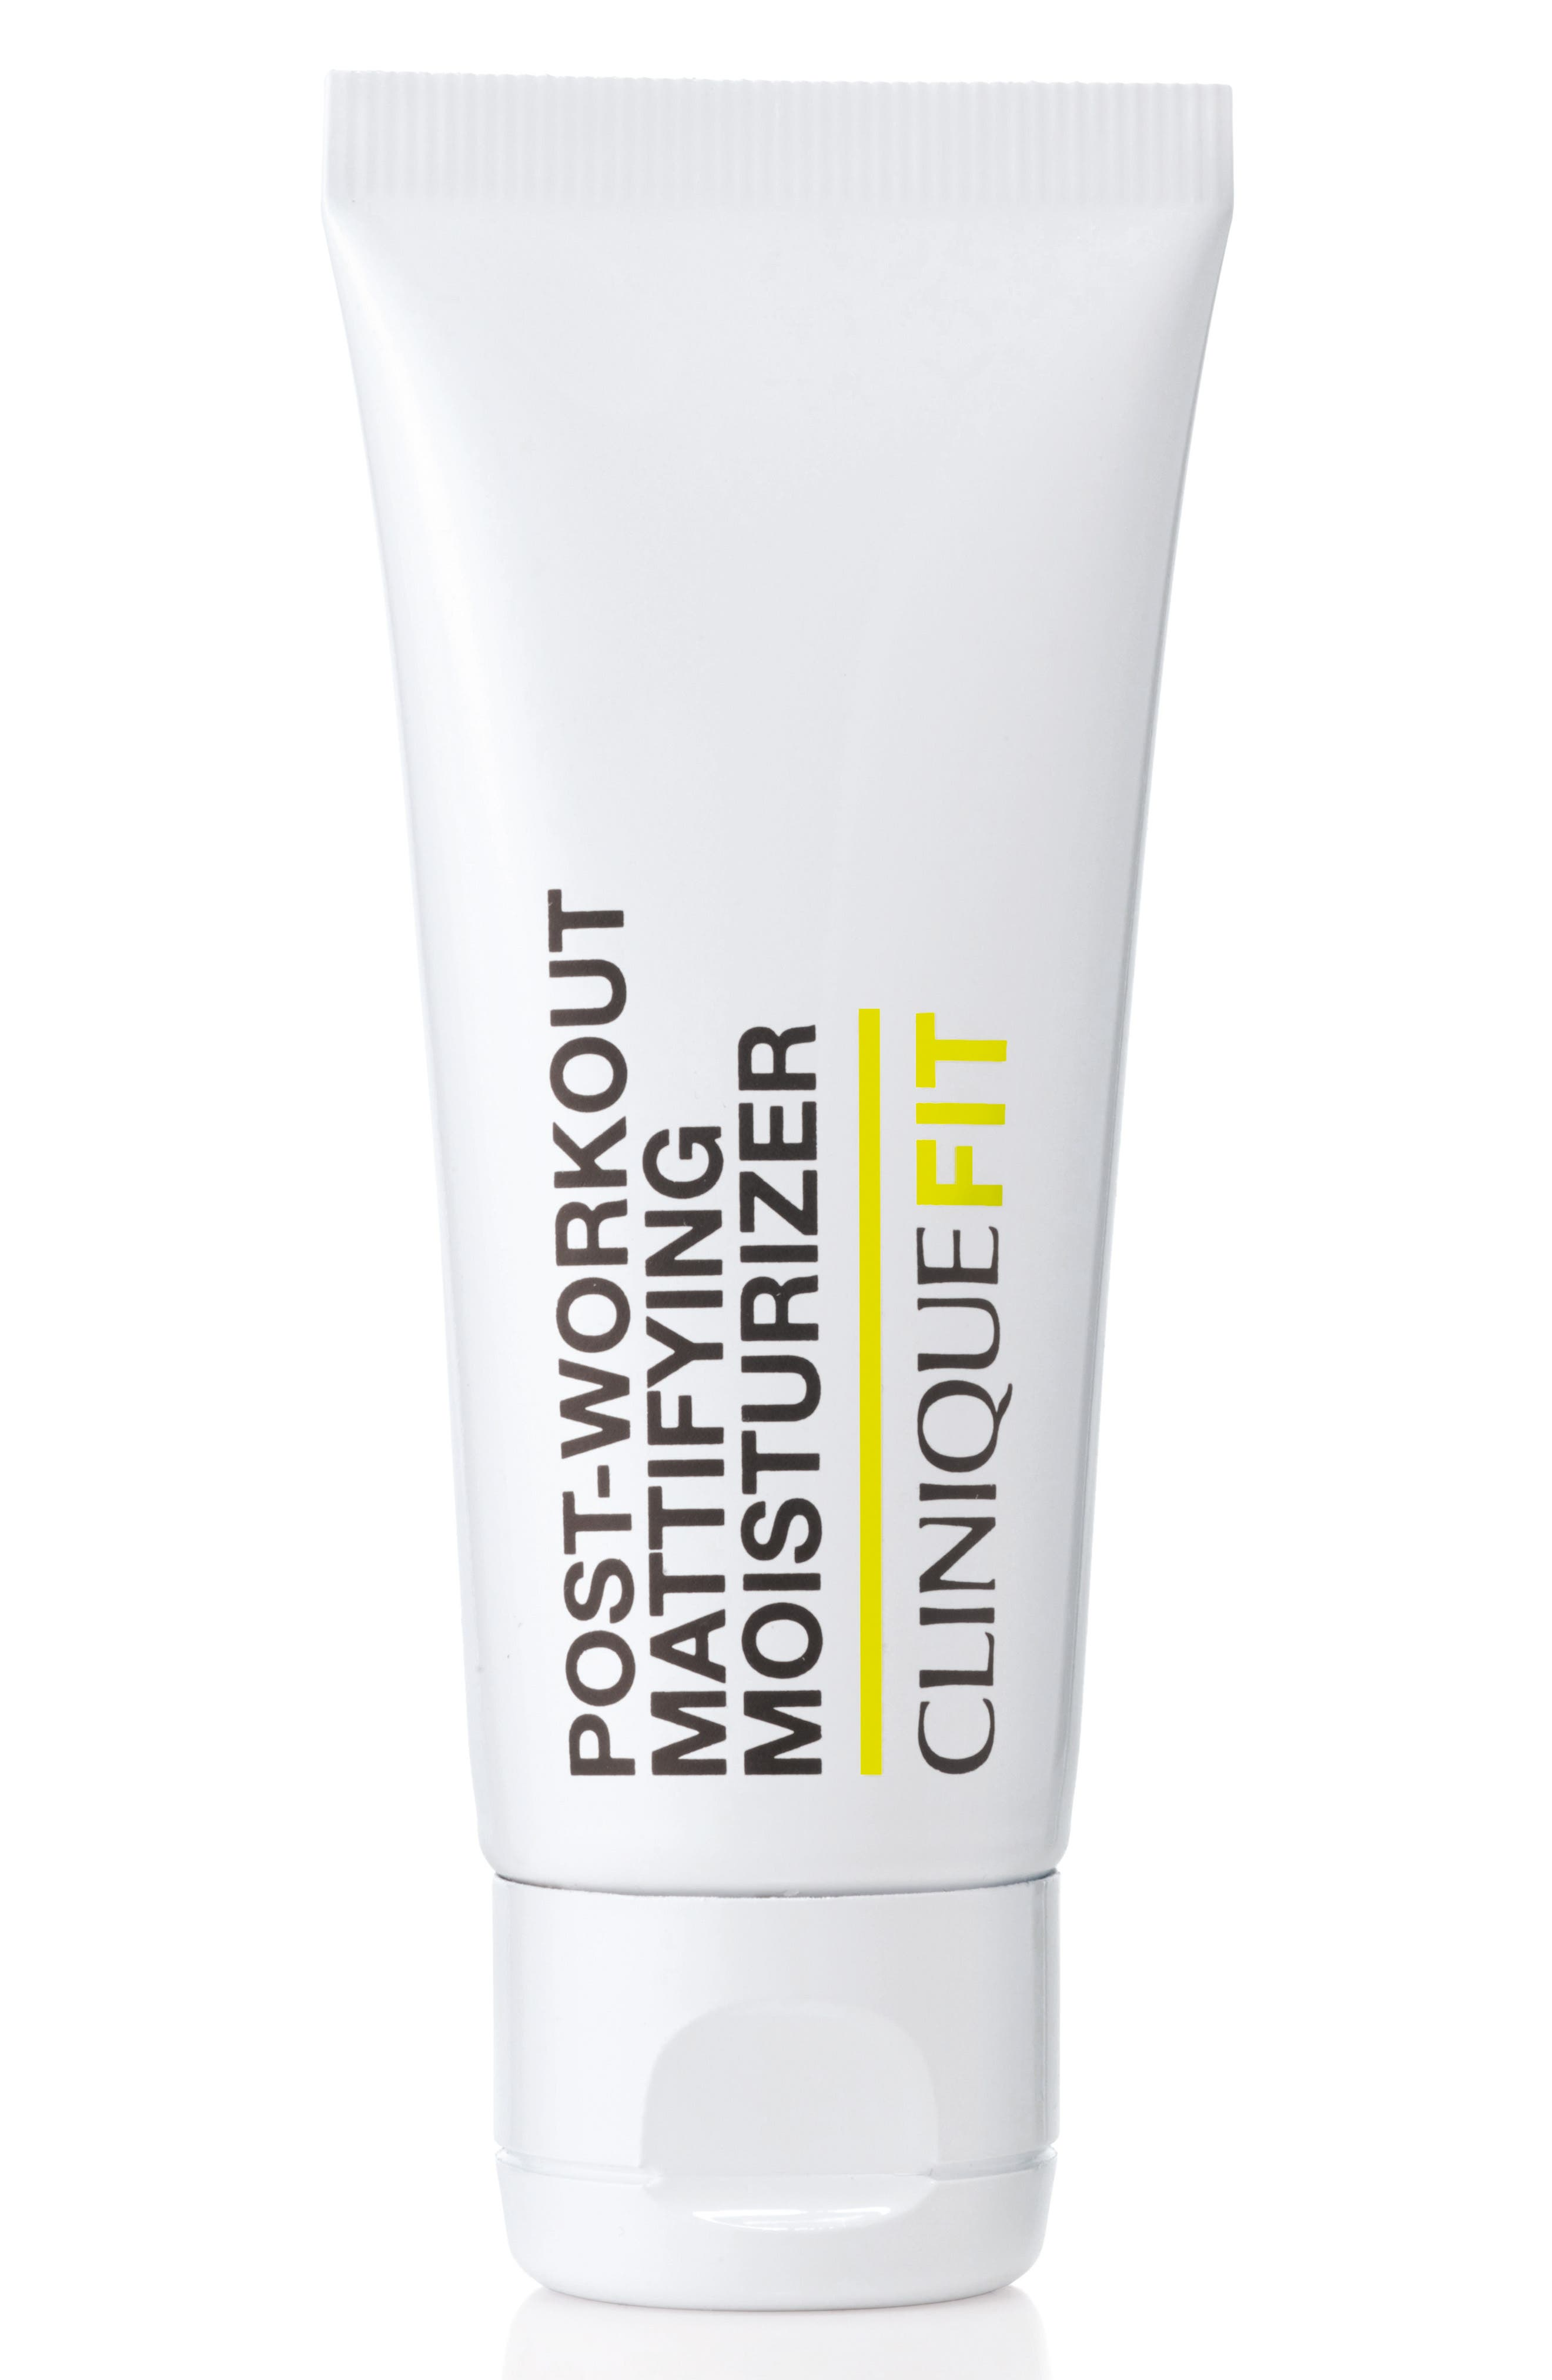 CliniqueFIT Post-Workout Mattifying Moisturizer,                             Main thumbnail 1, color,                             No Color